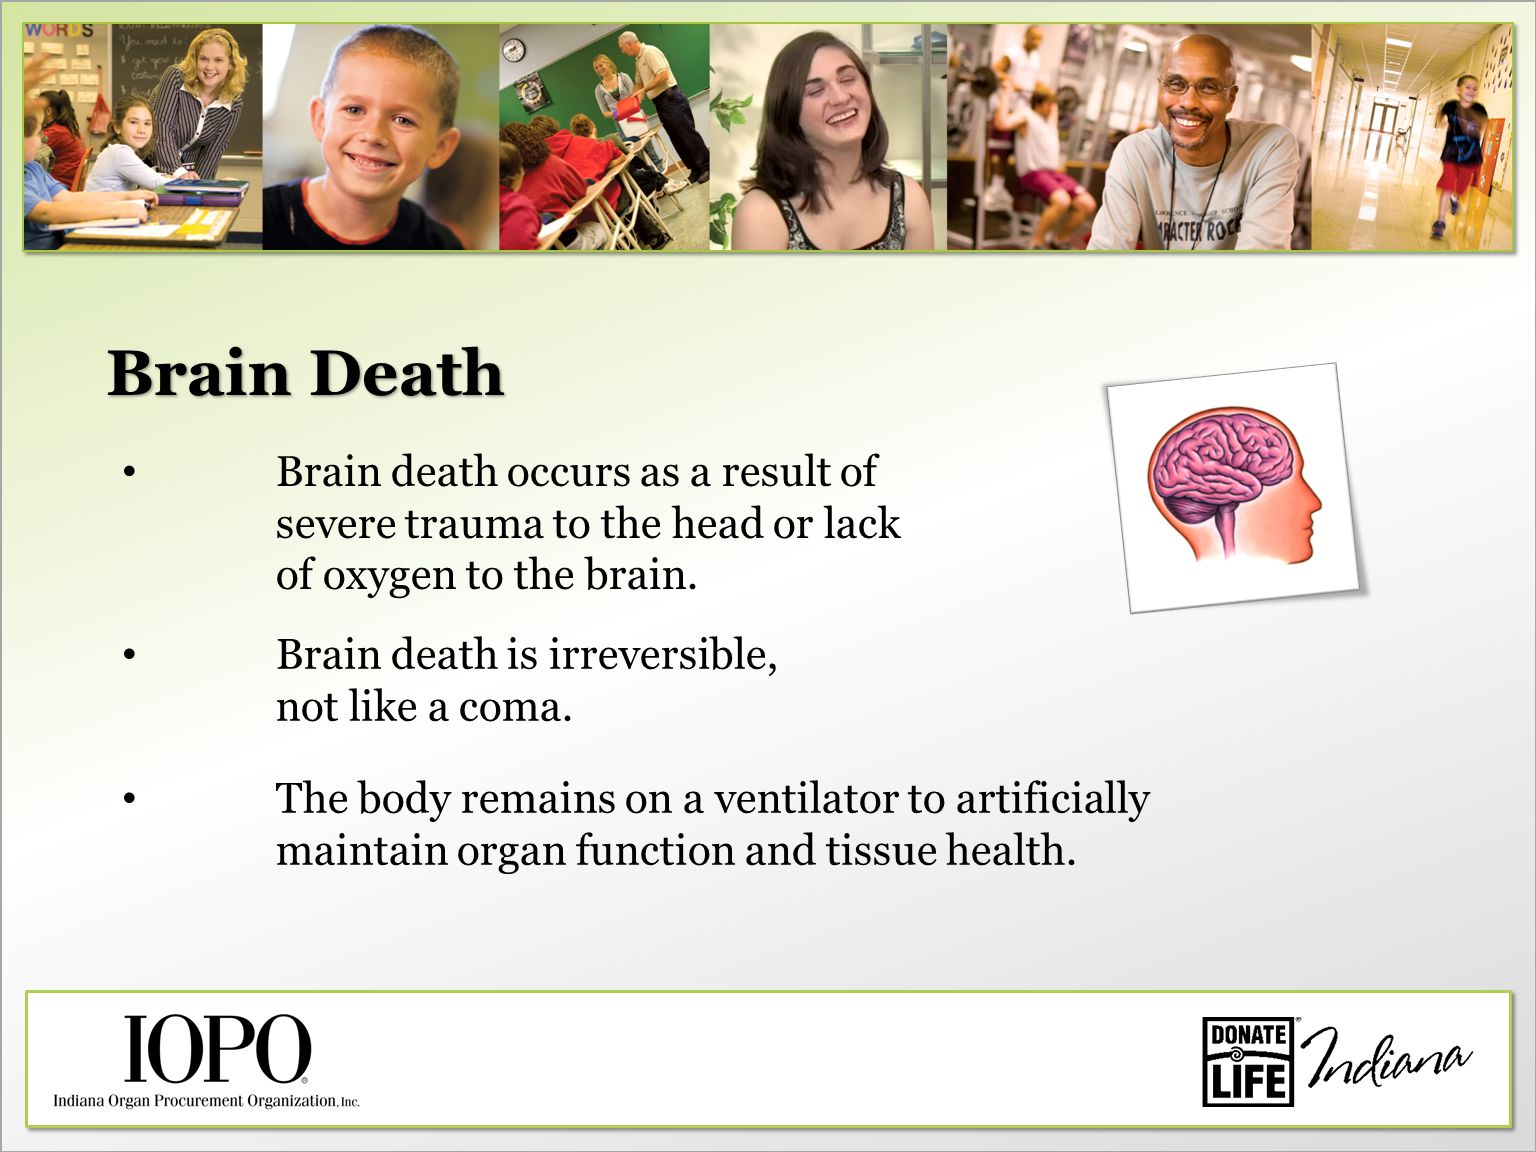 Brain Death Brain death occurs as a result of severe trauma to the head or lack of oxygen to the brain.